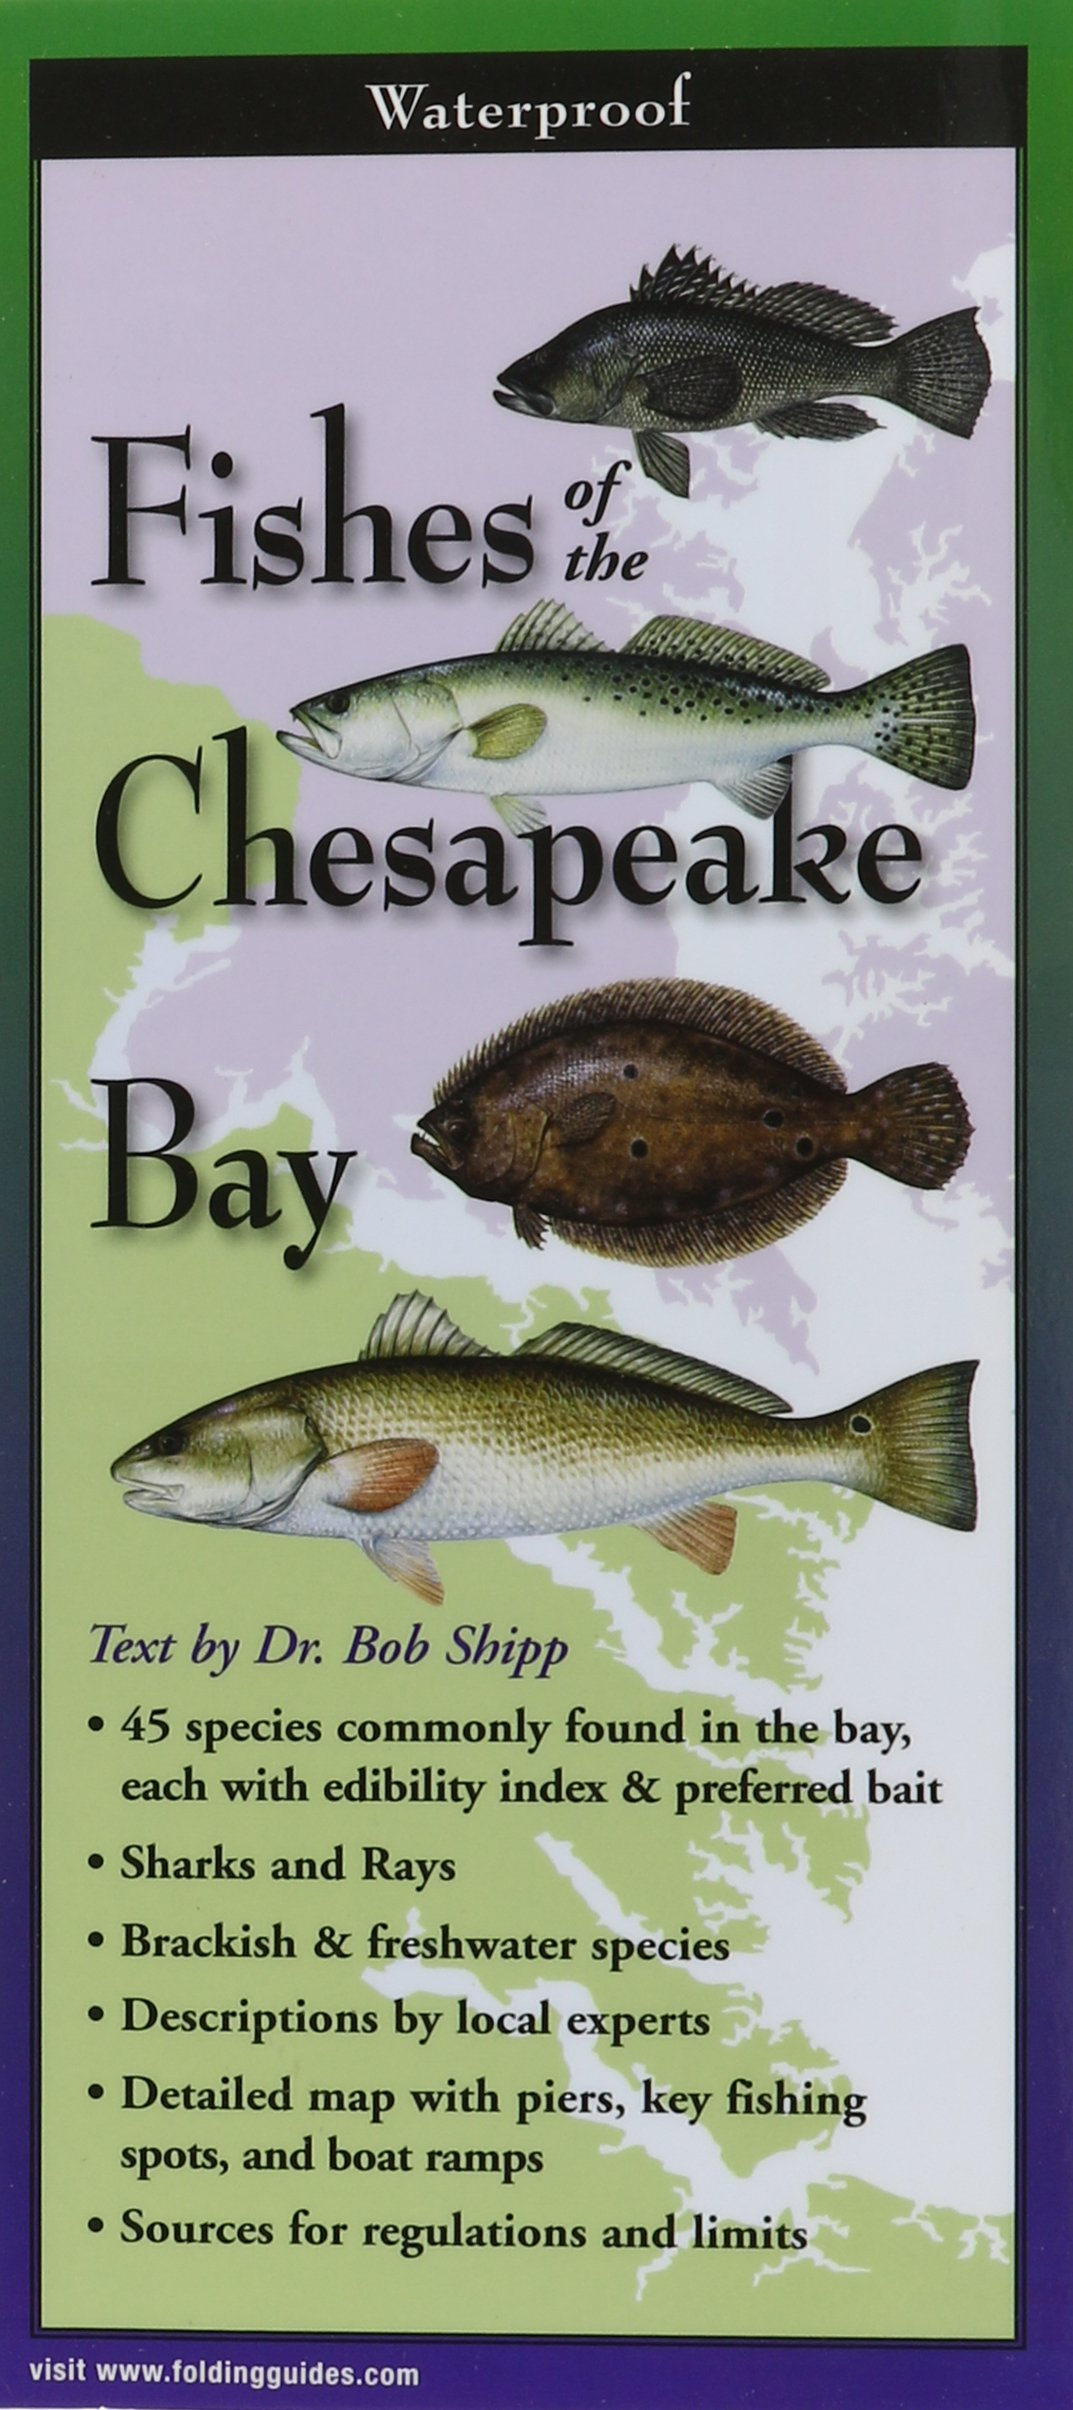 Fishes of the Chesapeake Bay: Folding Guide (Foldingguides) pdf